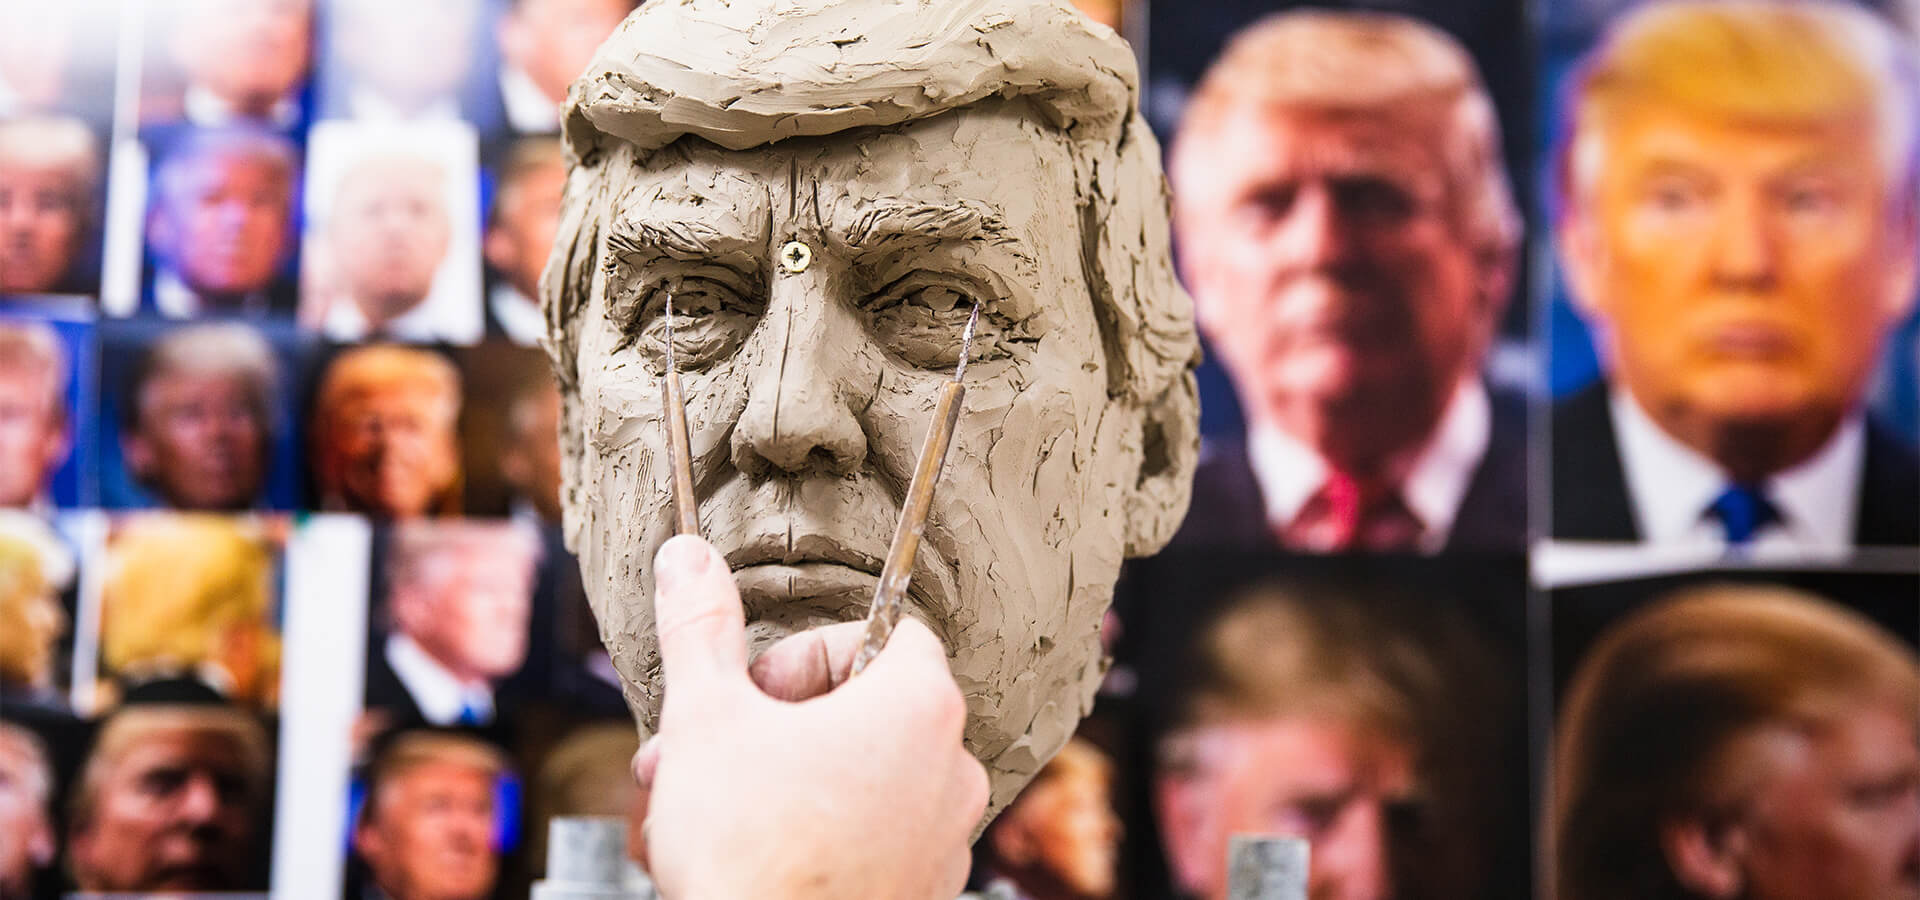 A slide depicting the process of sculpting the Donald Trump's head in clay prior to being cast in wax.